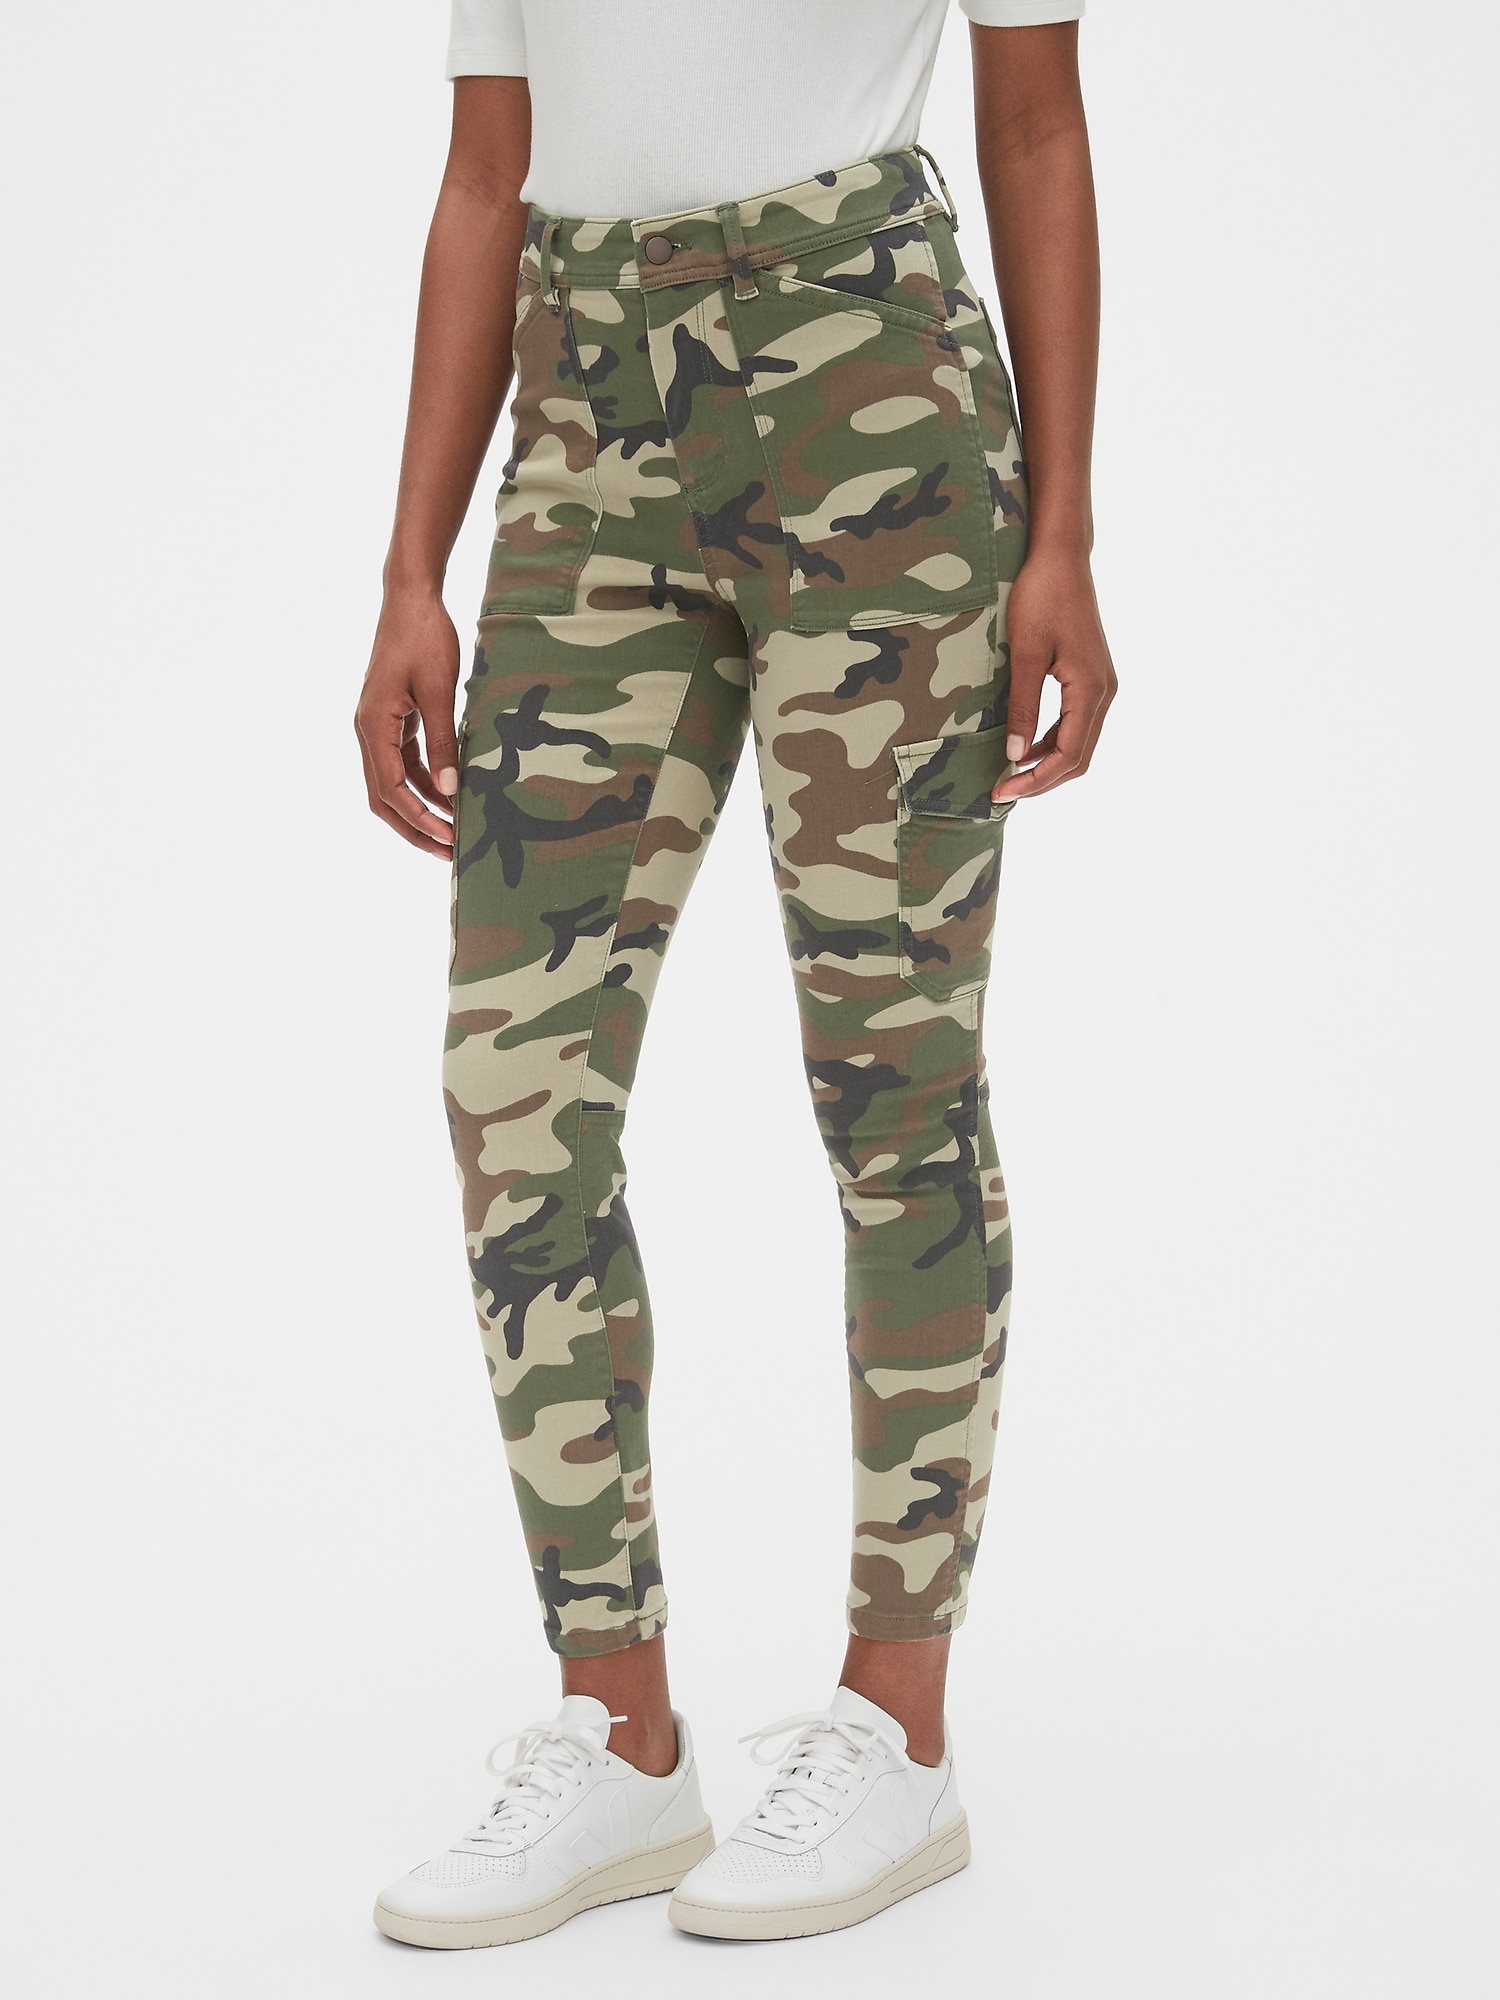 GAP Womens Canvas Camouflage Camo Print Jogger Pants with Elastic at Ankles